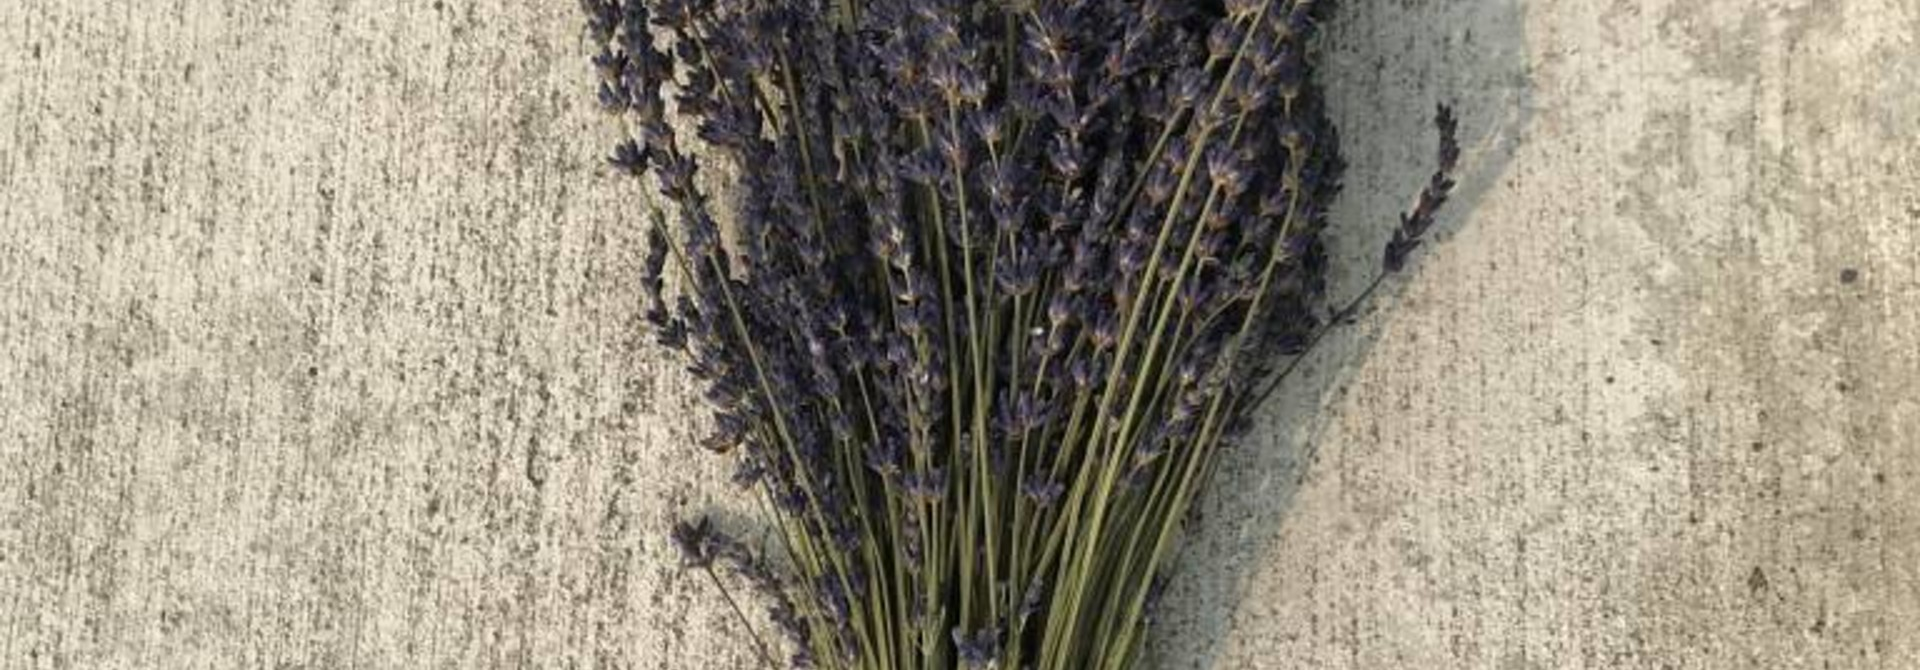 Dried Bunch of Lavender - Field Harvested